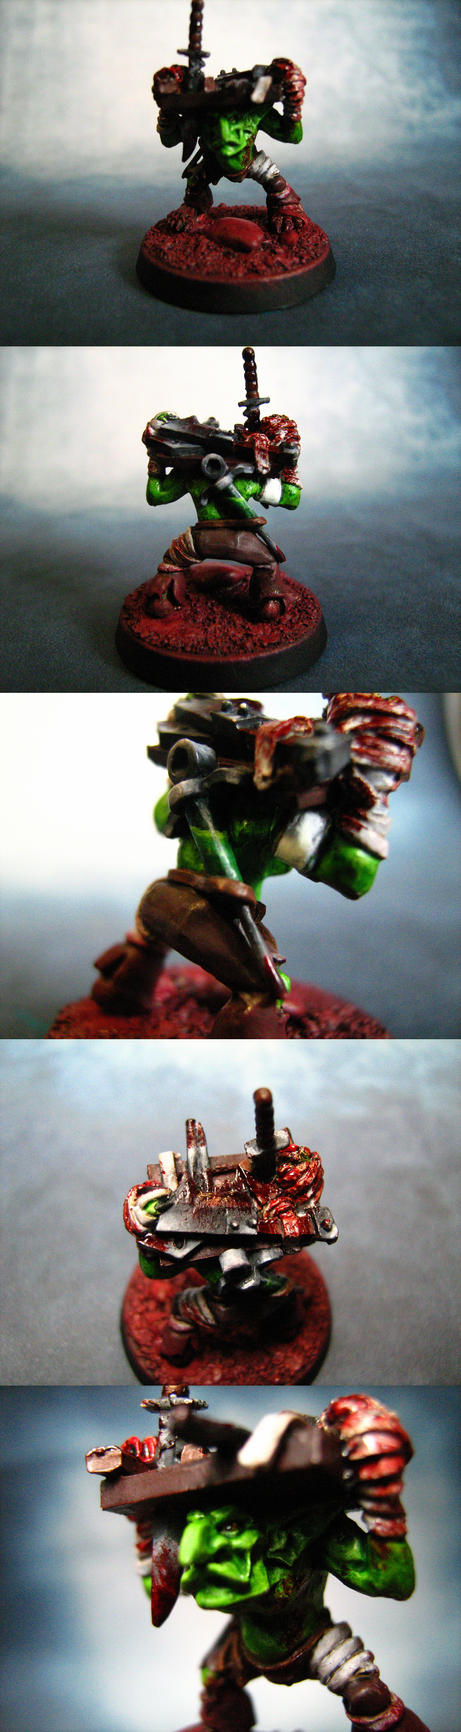 Galerie: Mes miniatures - Page 2 Grot_orderly_by_olivier2302-d4llqn8